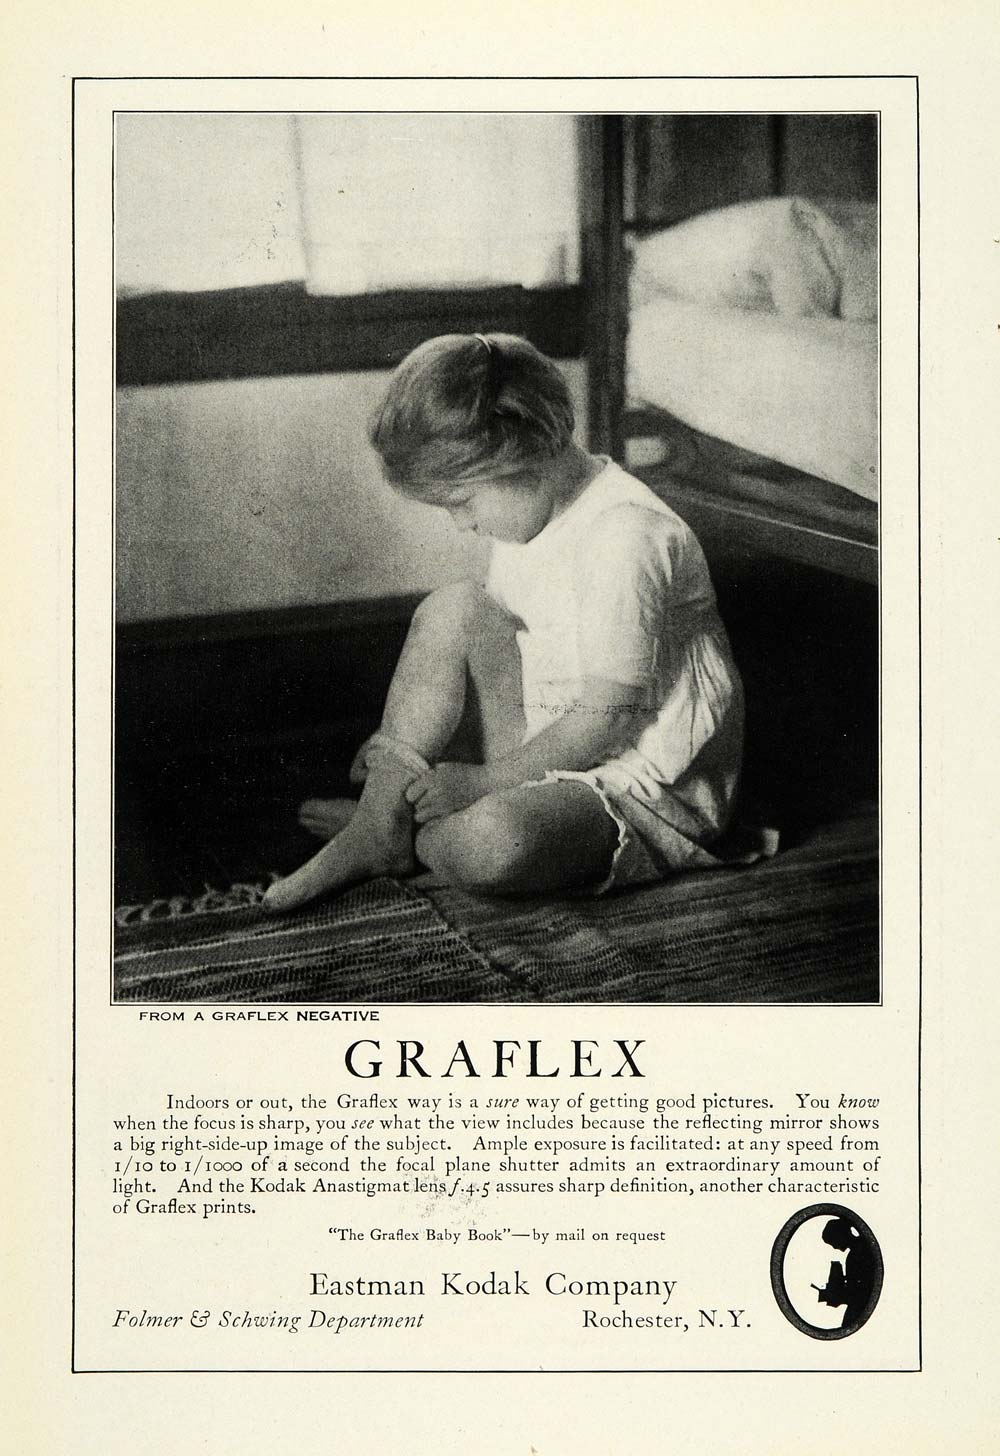 1922 Ad Eastman Kodak Co Rochester NY Graflex Negative Photo Child Camera NGM1